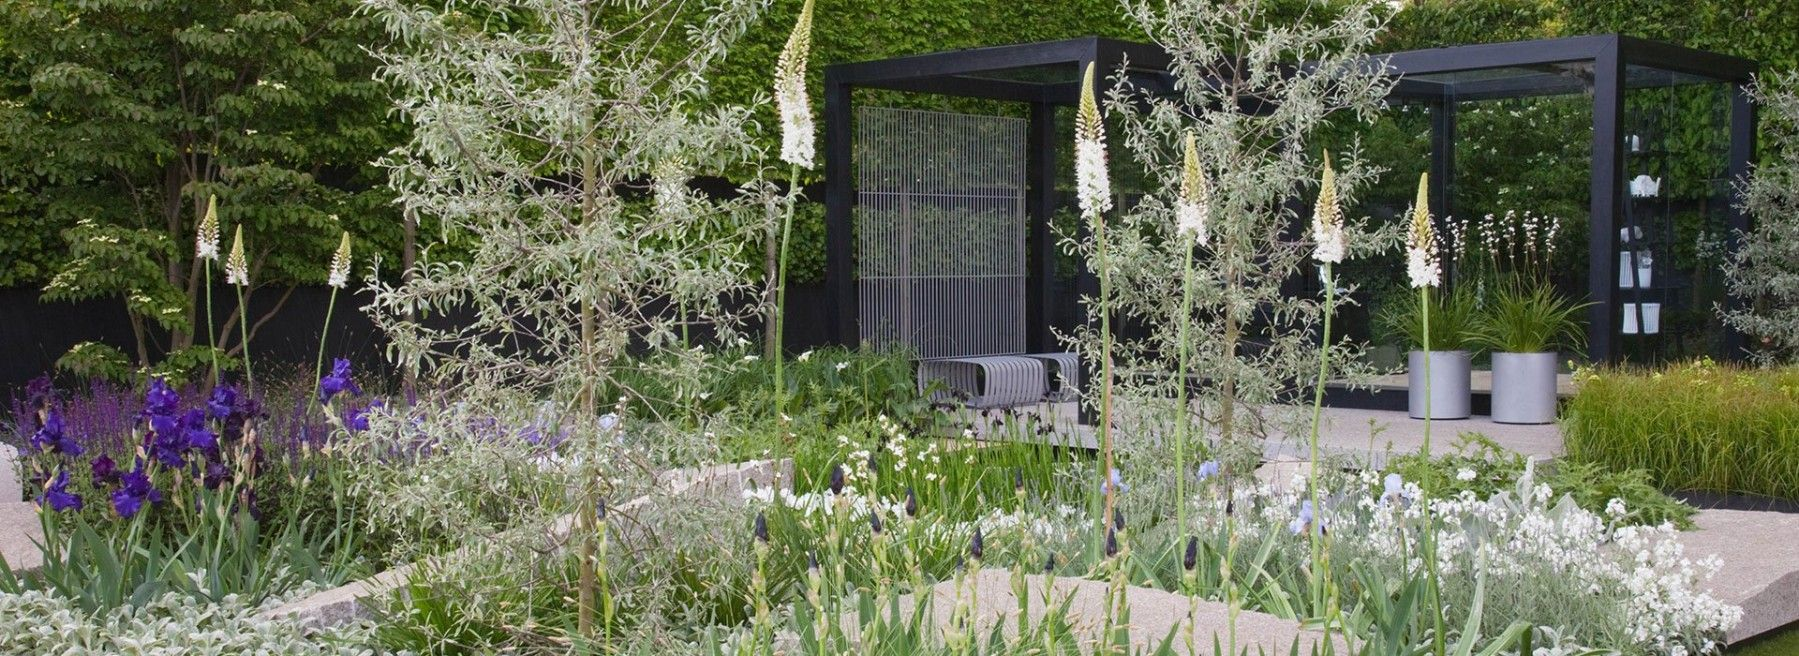 superb potager sur terrasse balcon 5 scene jardin. Black Bedroom Furniture Sets. Home Design Ideas